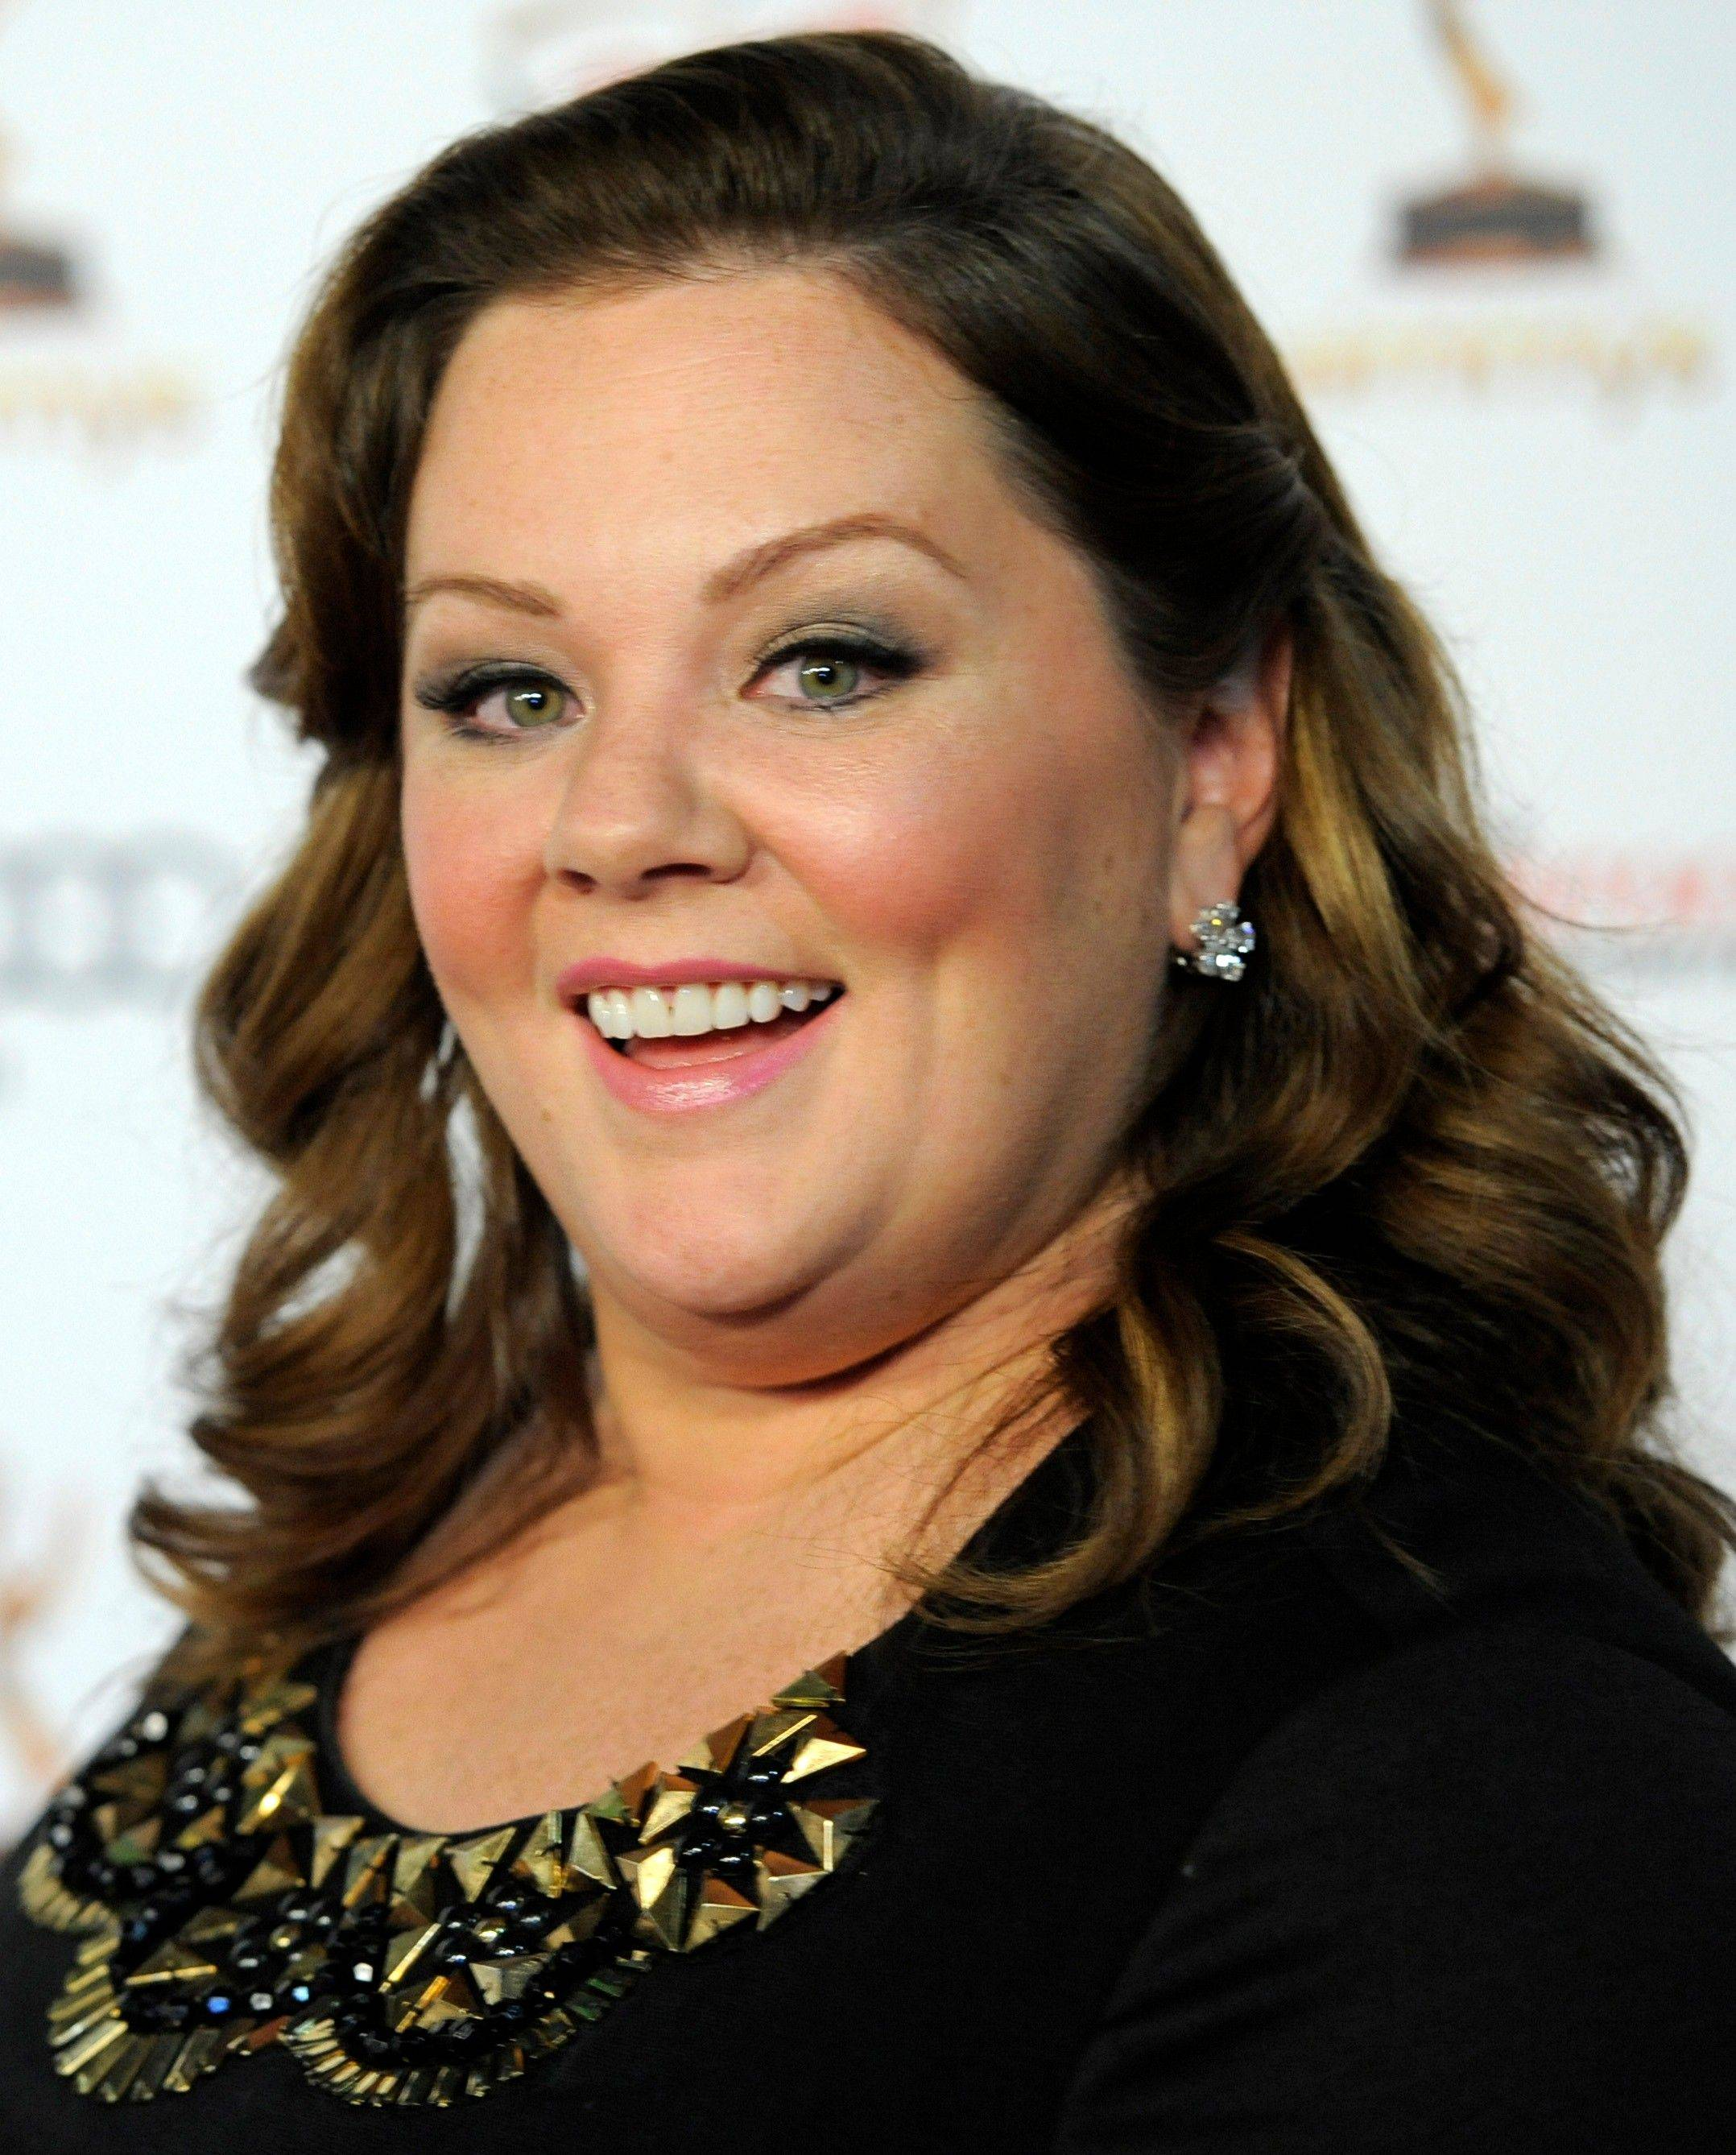 "In this Sept. 16, 2011 file photo, Melissa McCarthy poses at the 63rd Primetime Emmy Awards Performers Nominee Reception in Los Angeles. McCarthy was nominated Tuesday, Jan. 24, 2012 for an Academy Award for best supporting actress for her role in ""Bridesmaids."""